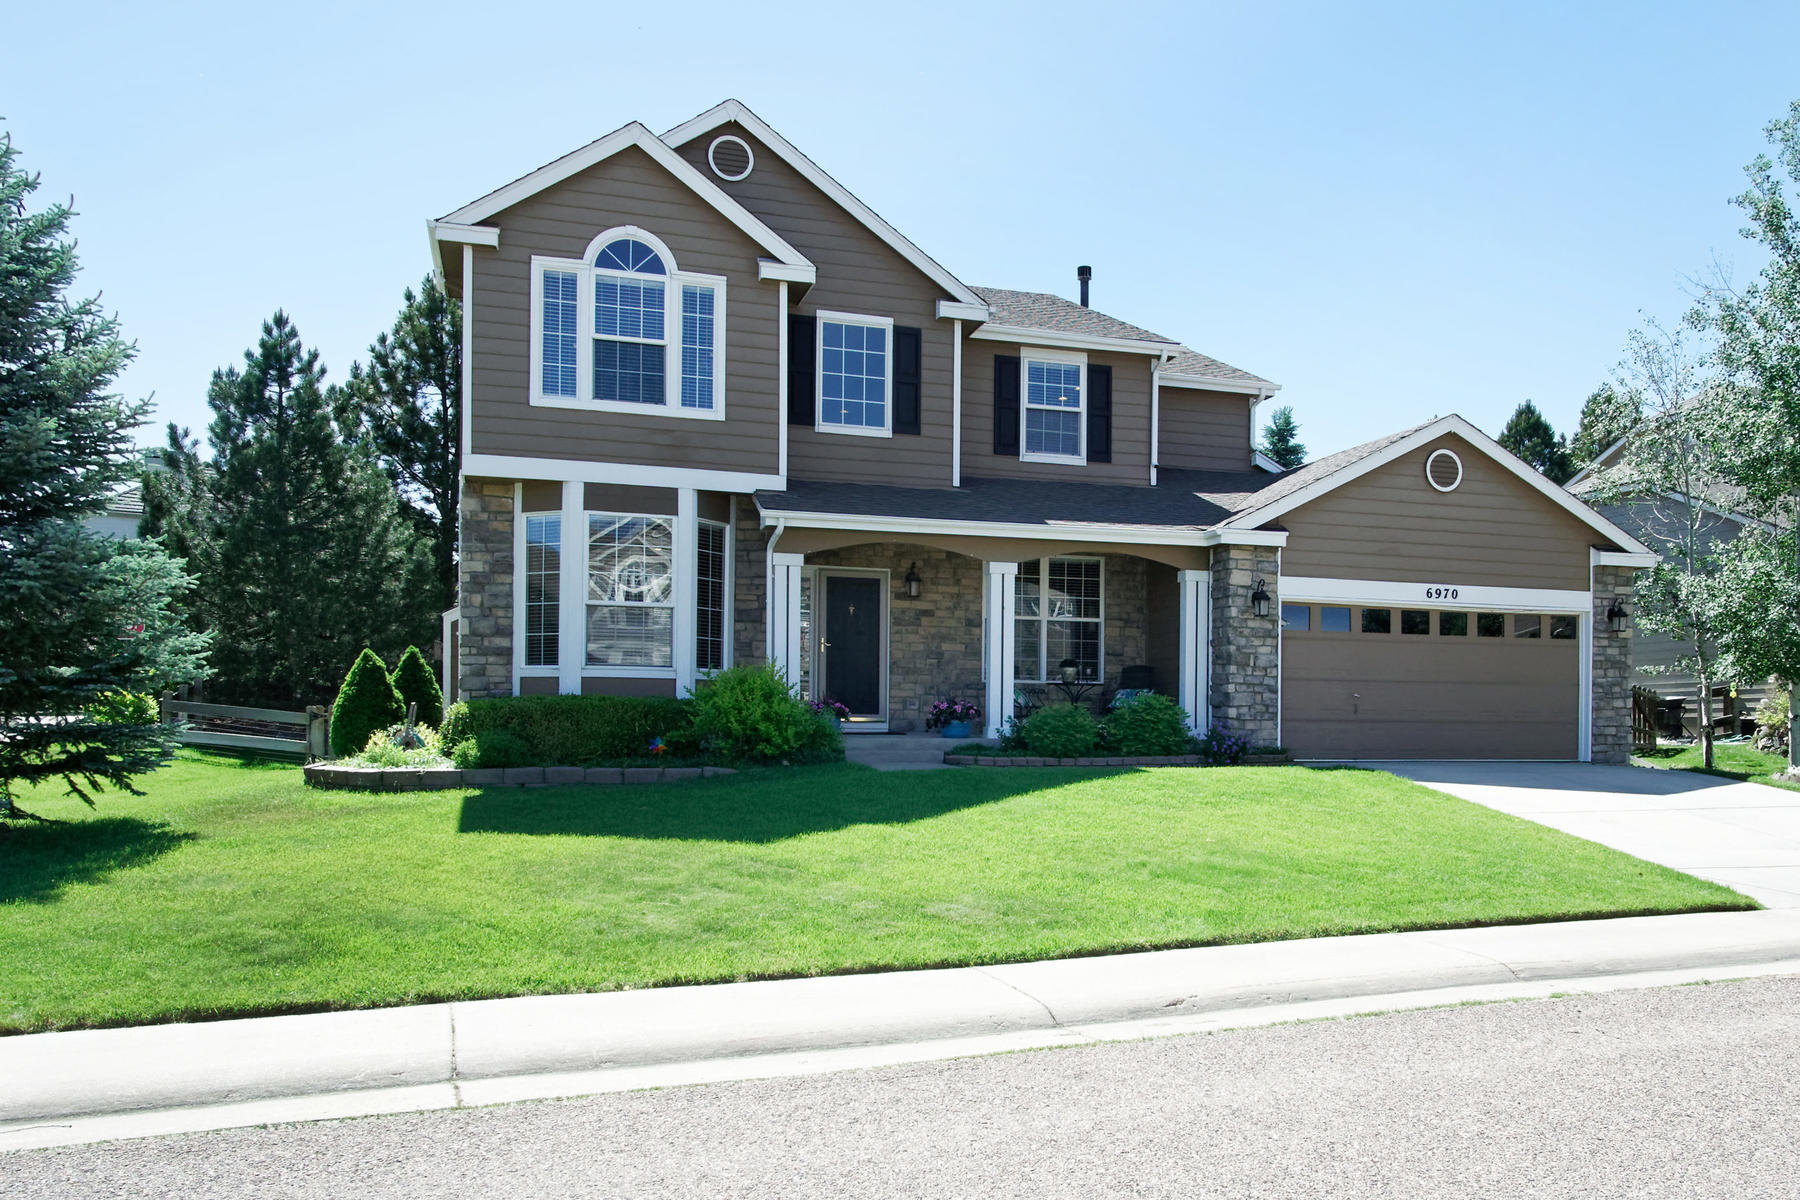 This beautiful, meticulously maintained home is located on a cul-de-sac in Castle Pines North.